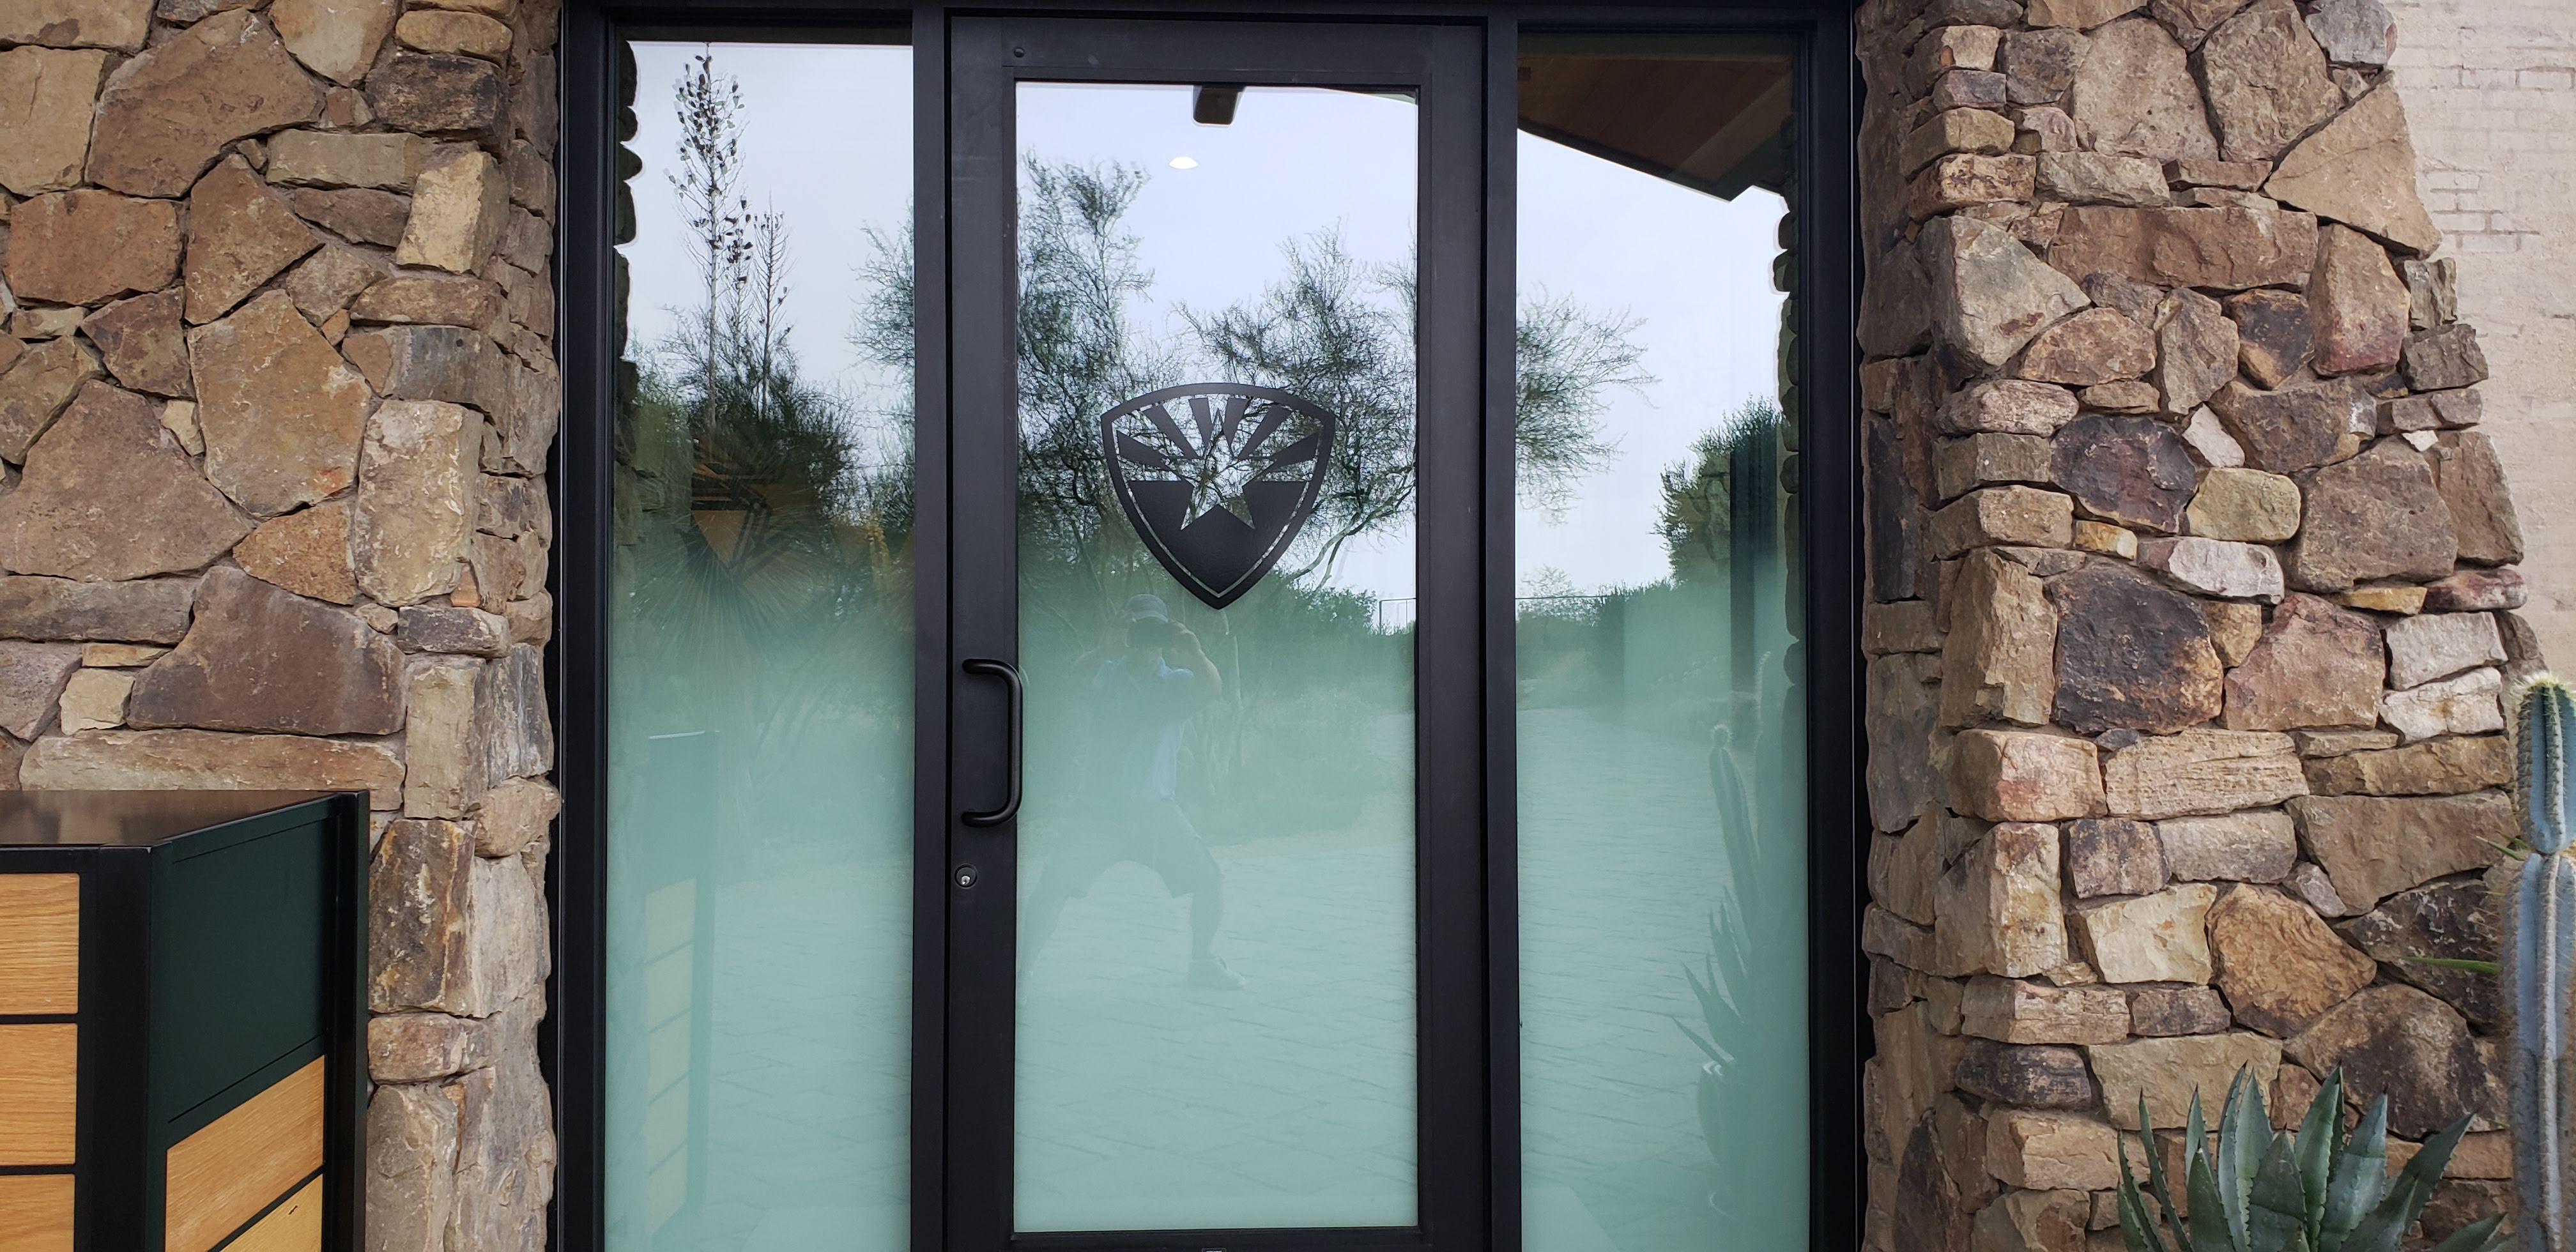 Subtle yet professional looking company logo applied with decorative film. Arizona